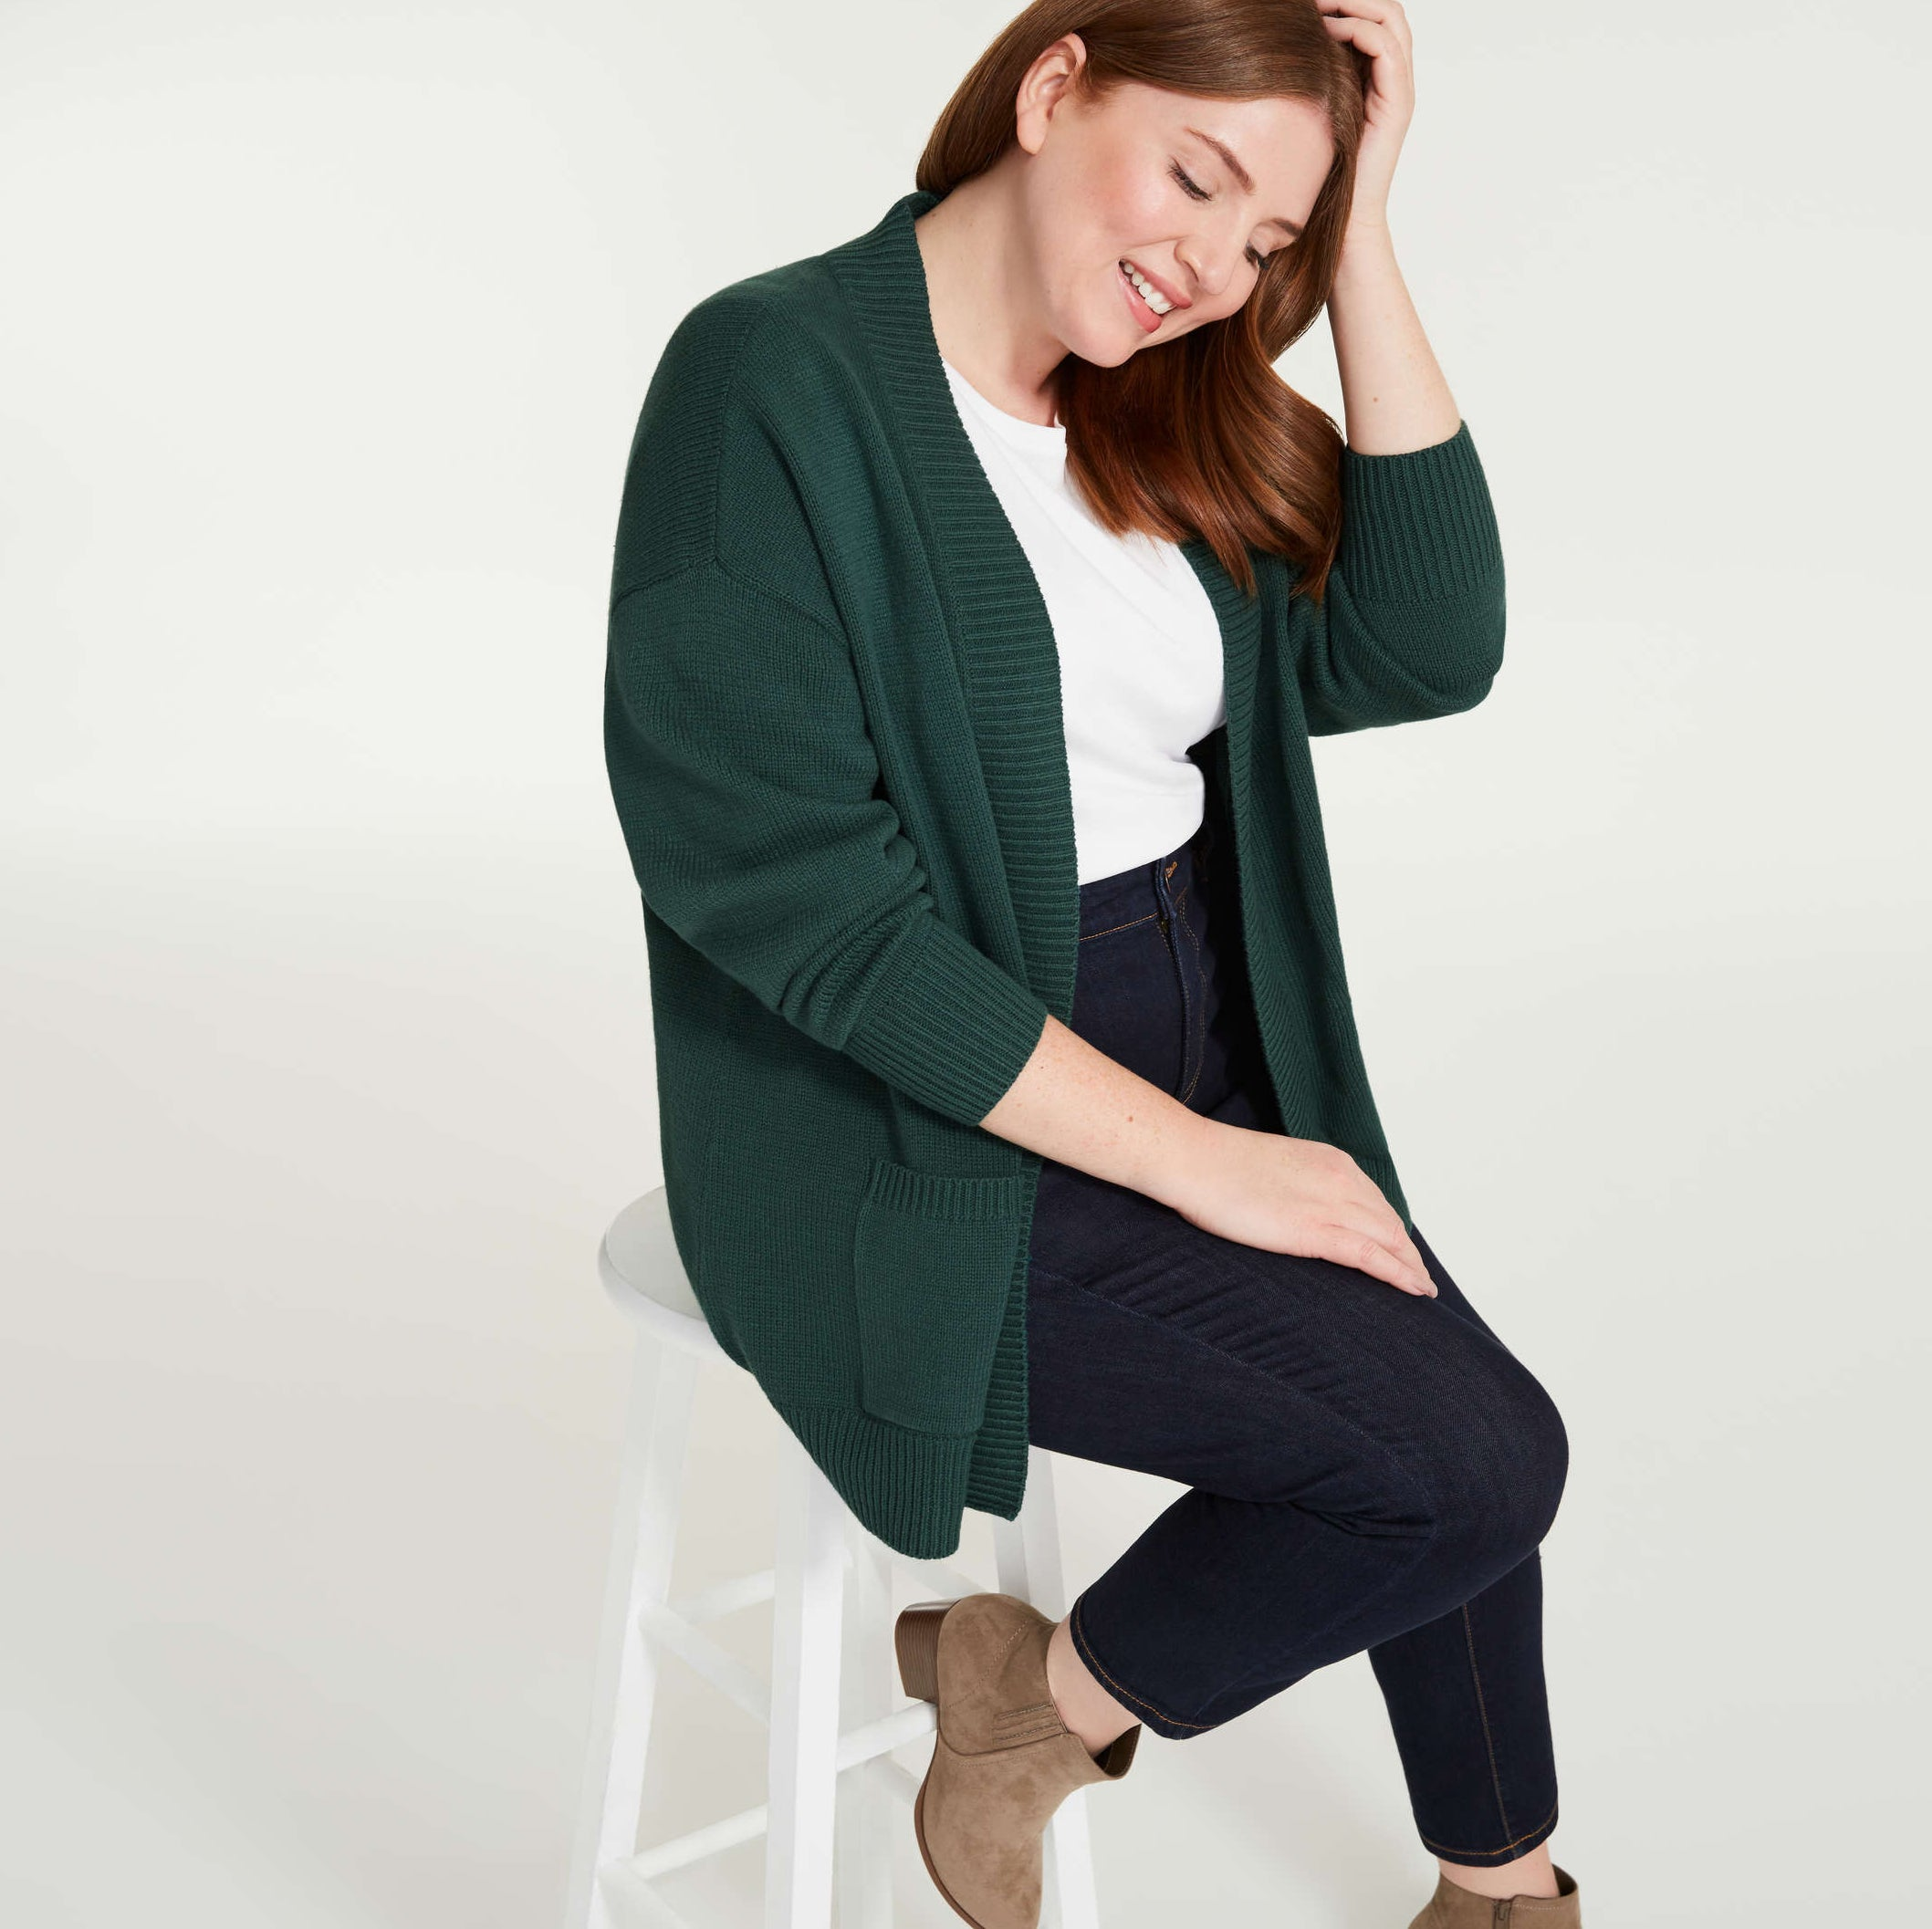 A person wearing a long cardigan over a T-shirt and pants